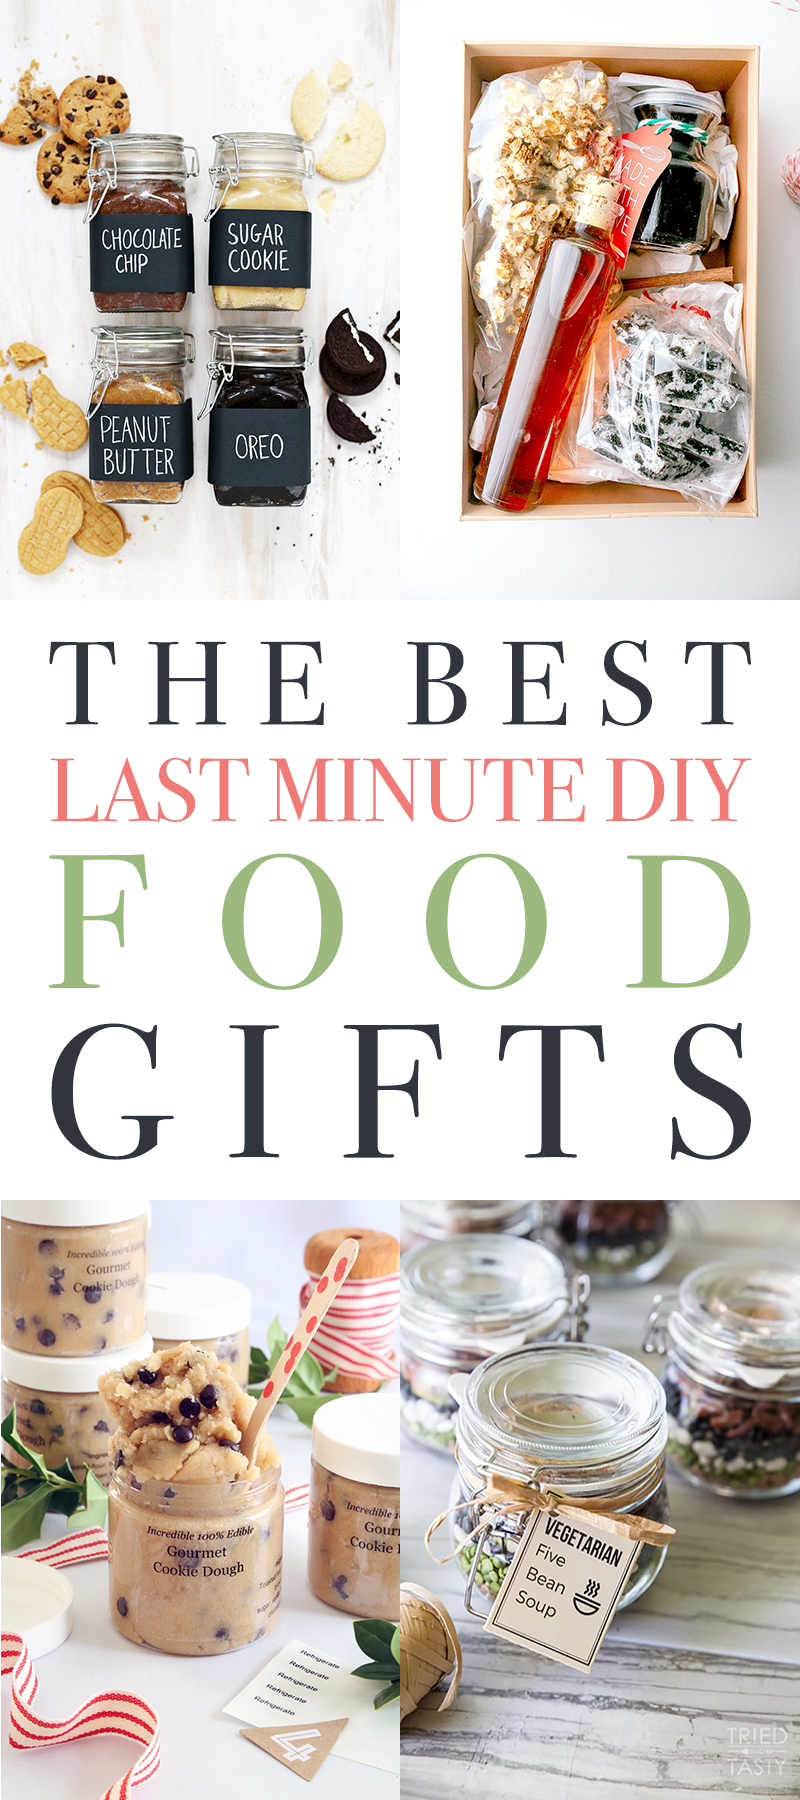 The Best Last Minute DIY Food Gifts are waiting for you on the blog. Such yumminess that will make anyone you know a happy camper! Bon Appetit!